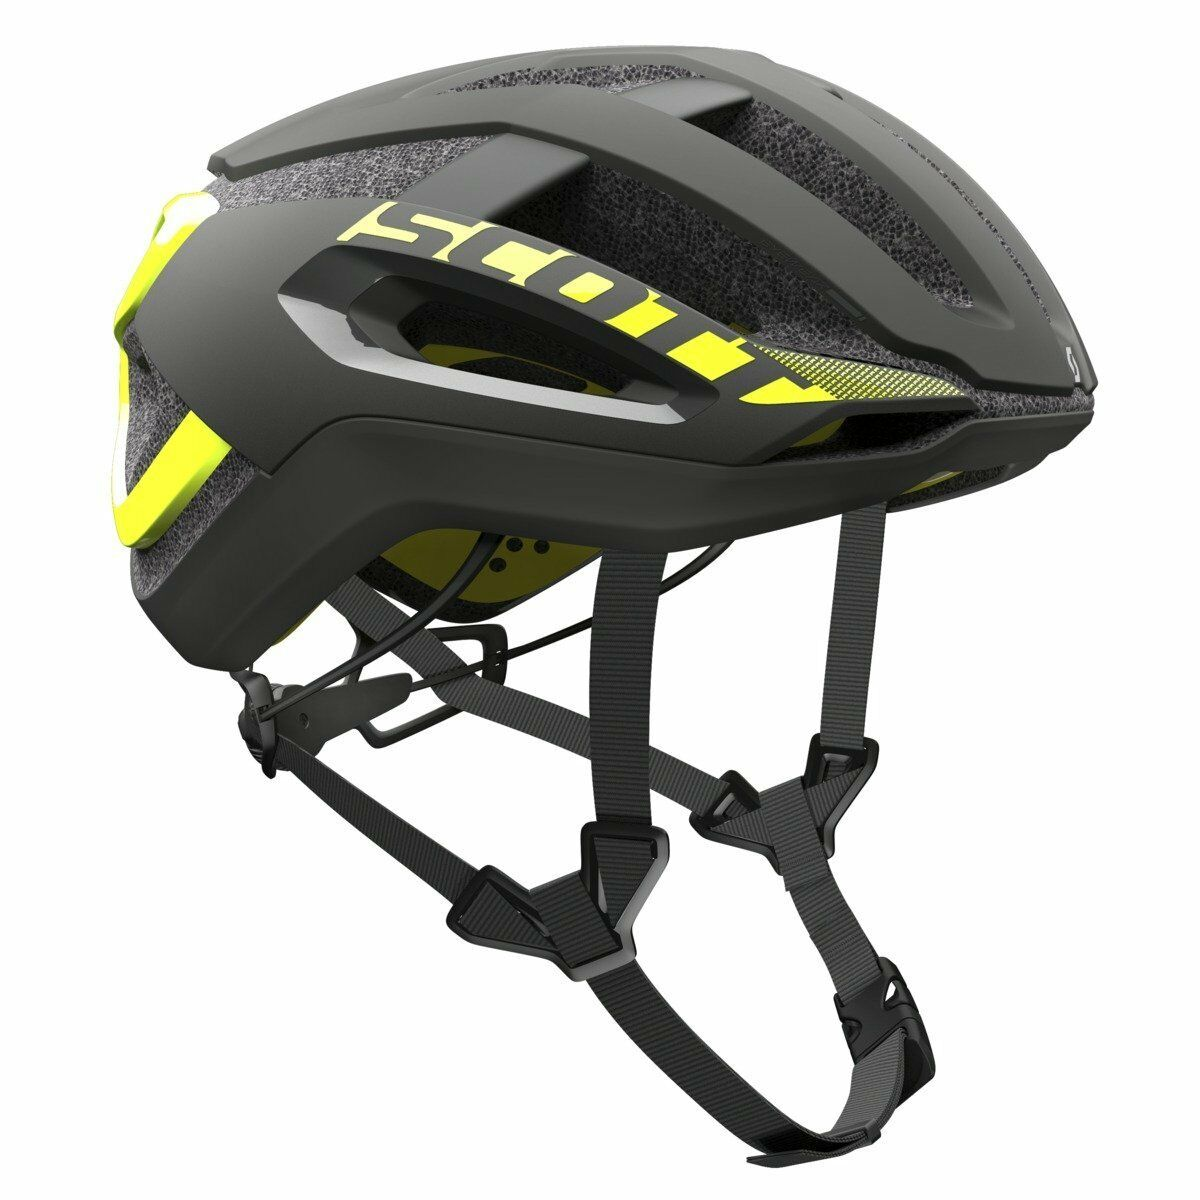 CASCO SCOTT HELMET CENTRIC PLUS Couleure noir-jaune RC taglia L